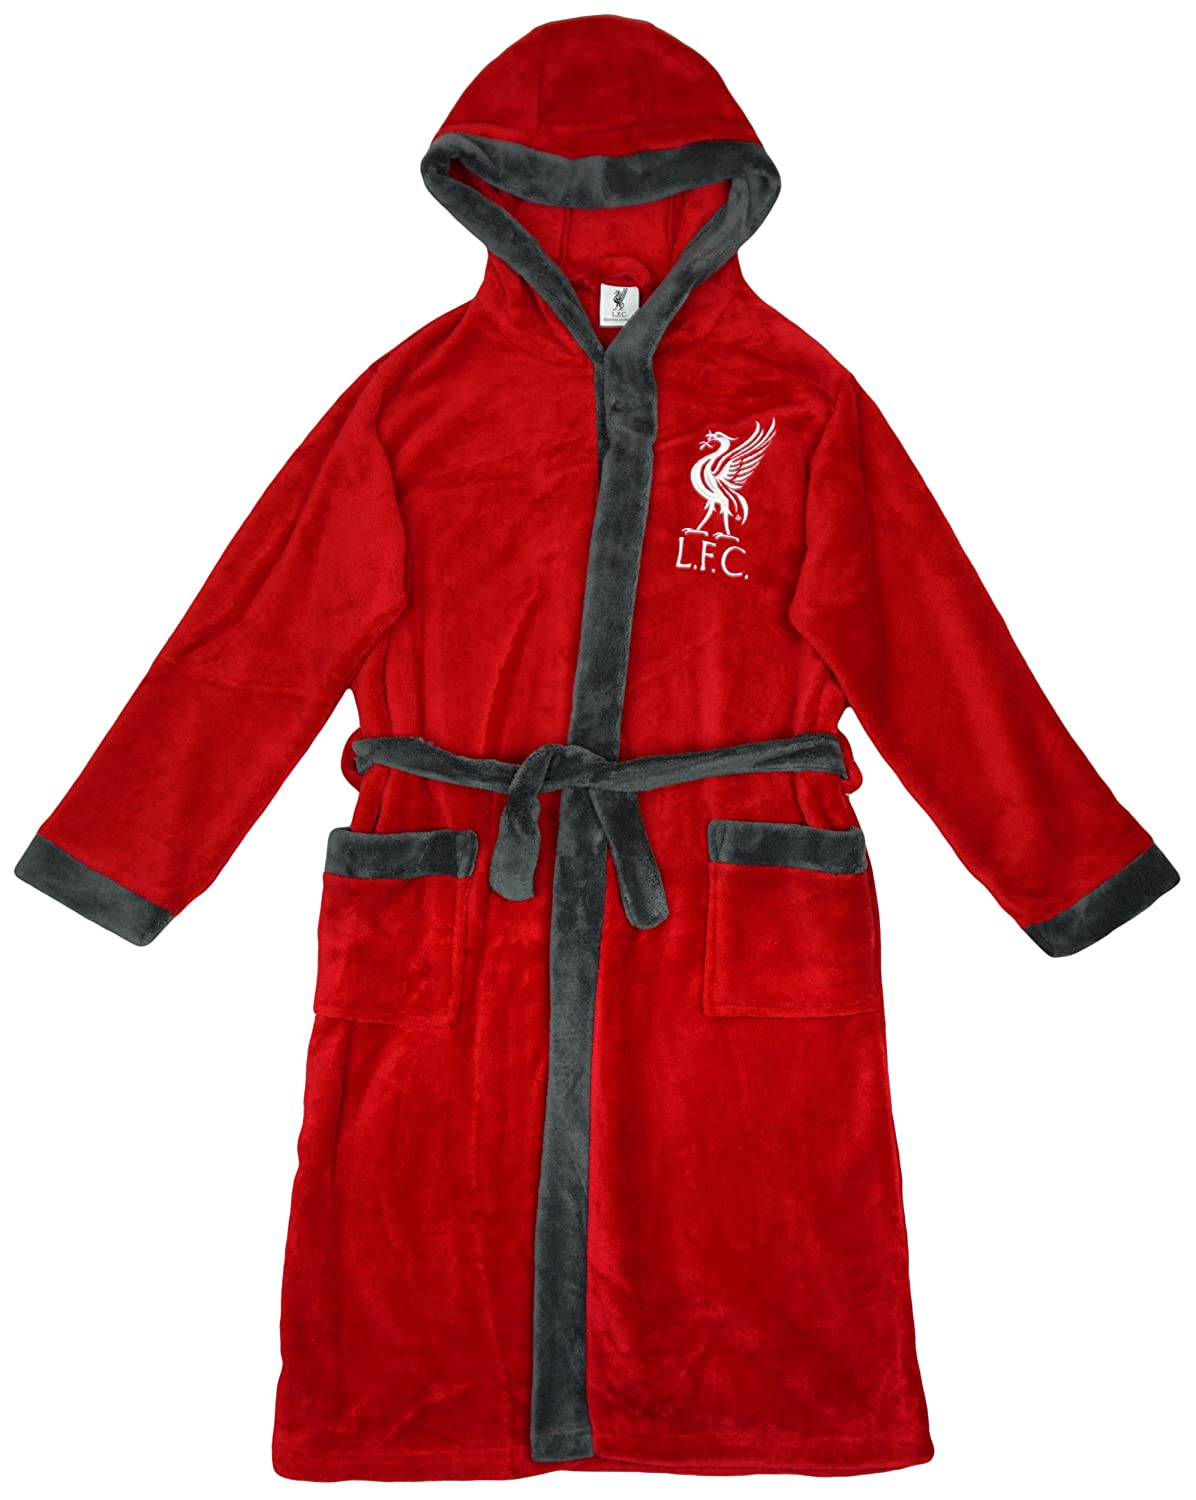 Boys Liverpool LFC Football Fleece Hooded Dressing Gown Bathrobe Sizes from 3 to 6 Years